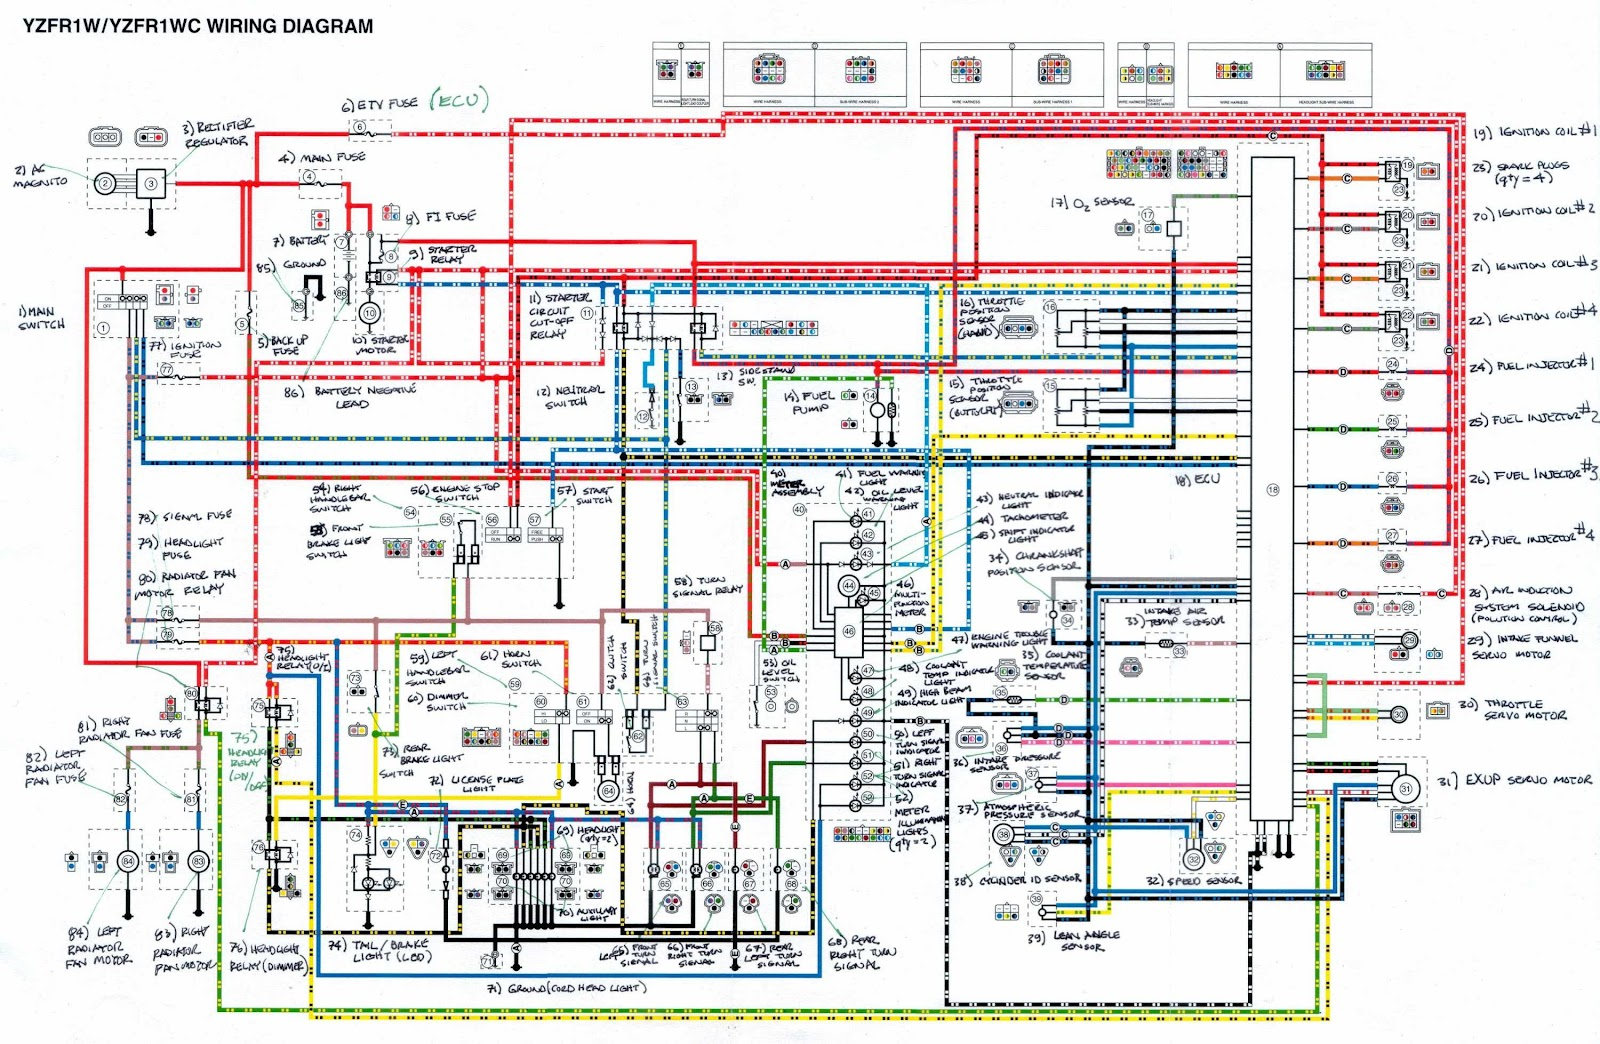 2008 r1 wire harness diagram wiring diagram origin yamaha golf cart wiring harness 2008 yamaha wiring harness [ 1600 x 1044 Pixel ]